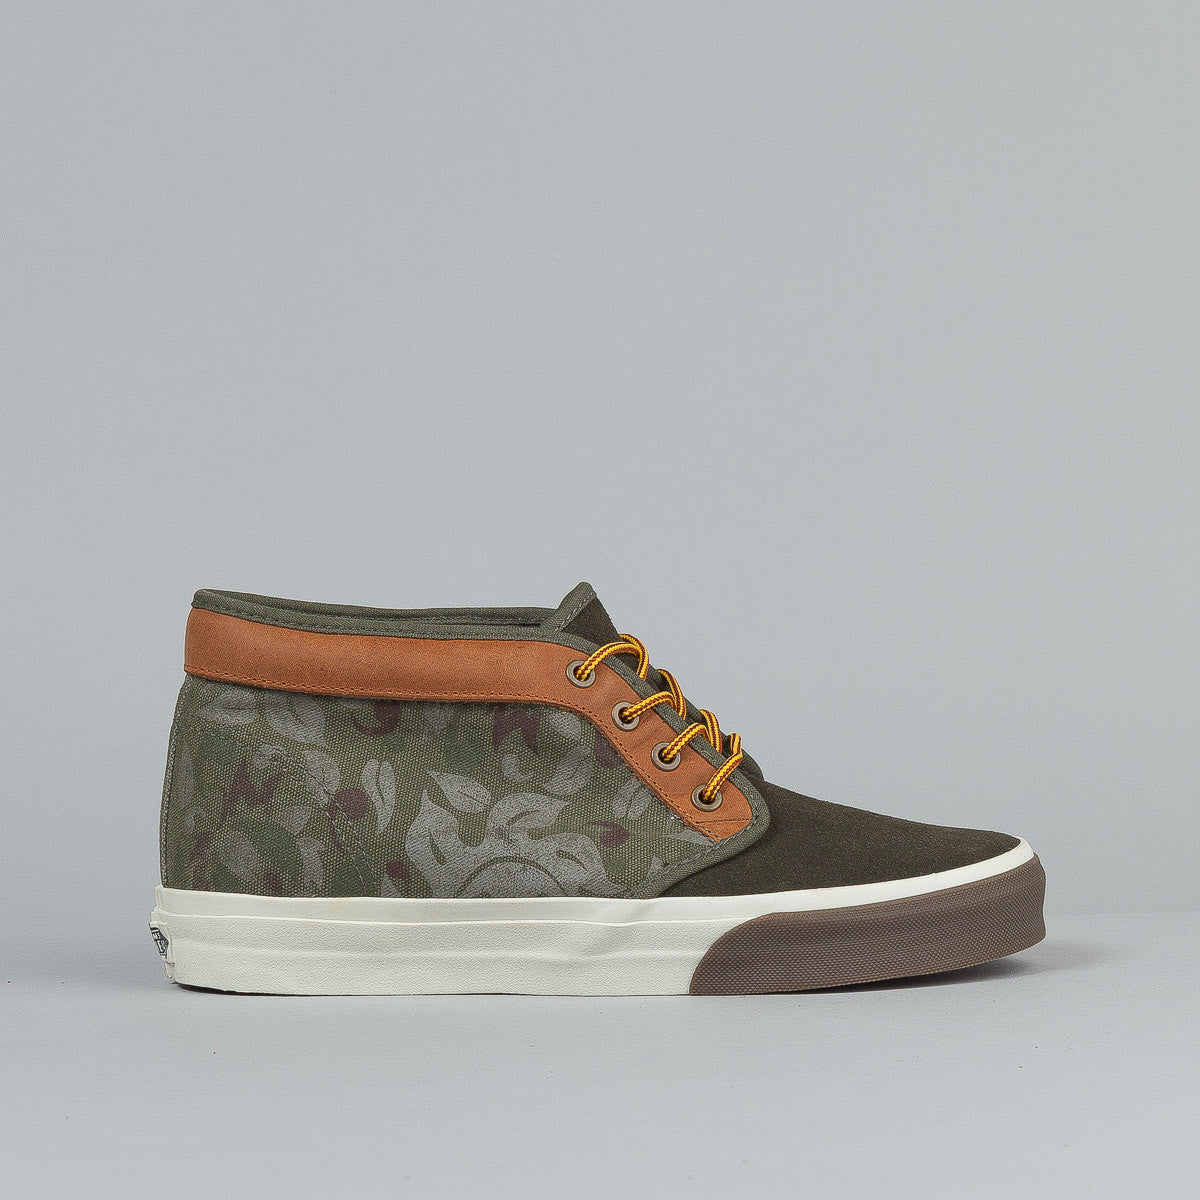 Vans Chukka Boot CA (Floral Camo) Olive Night